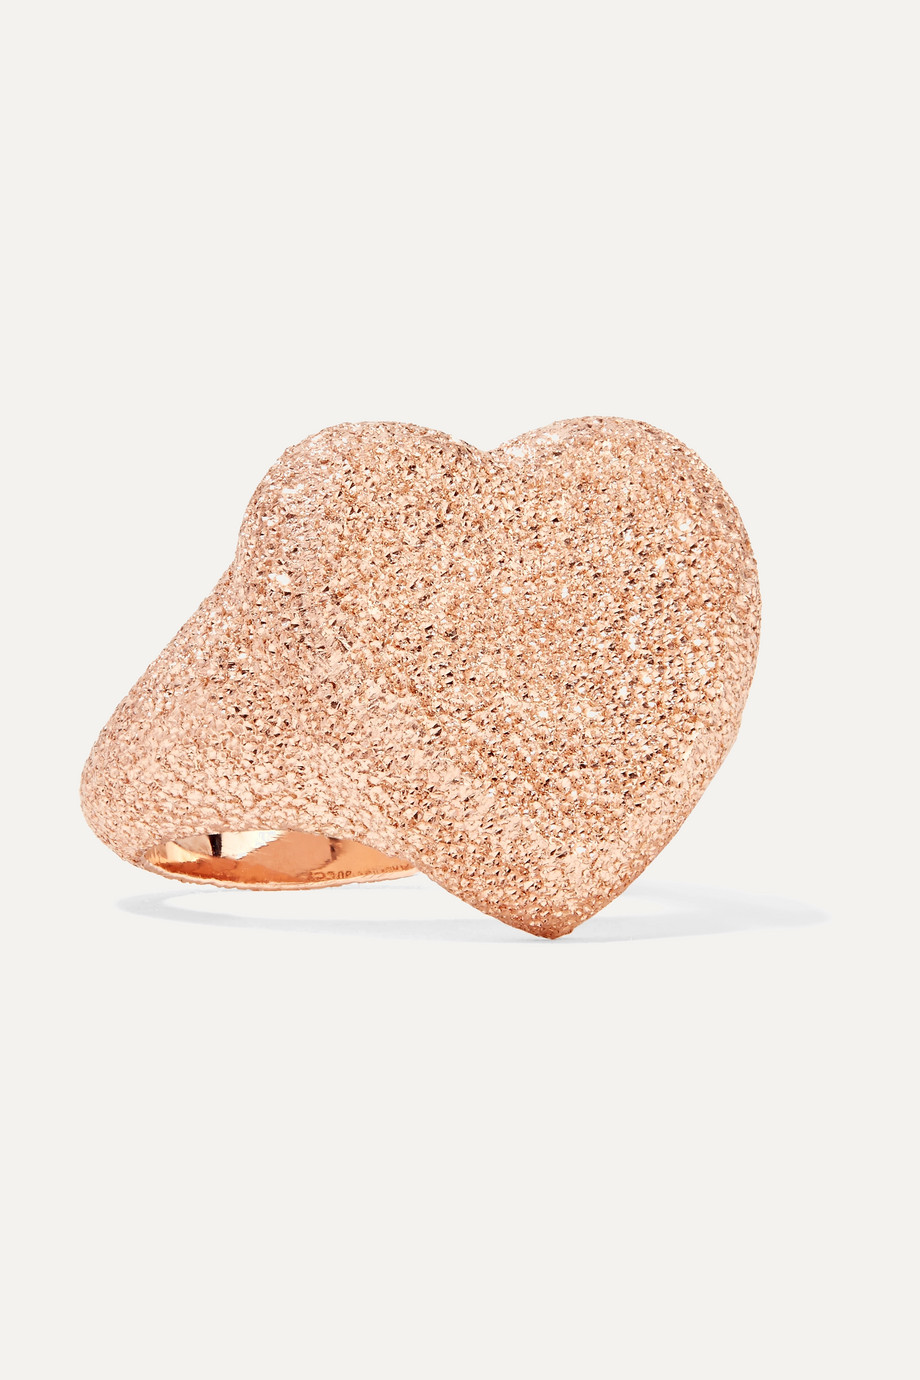 Carolina Bucci Florentine Heart 18-karat rose gold ring